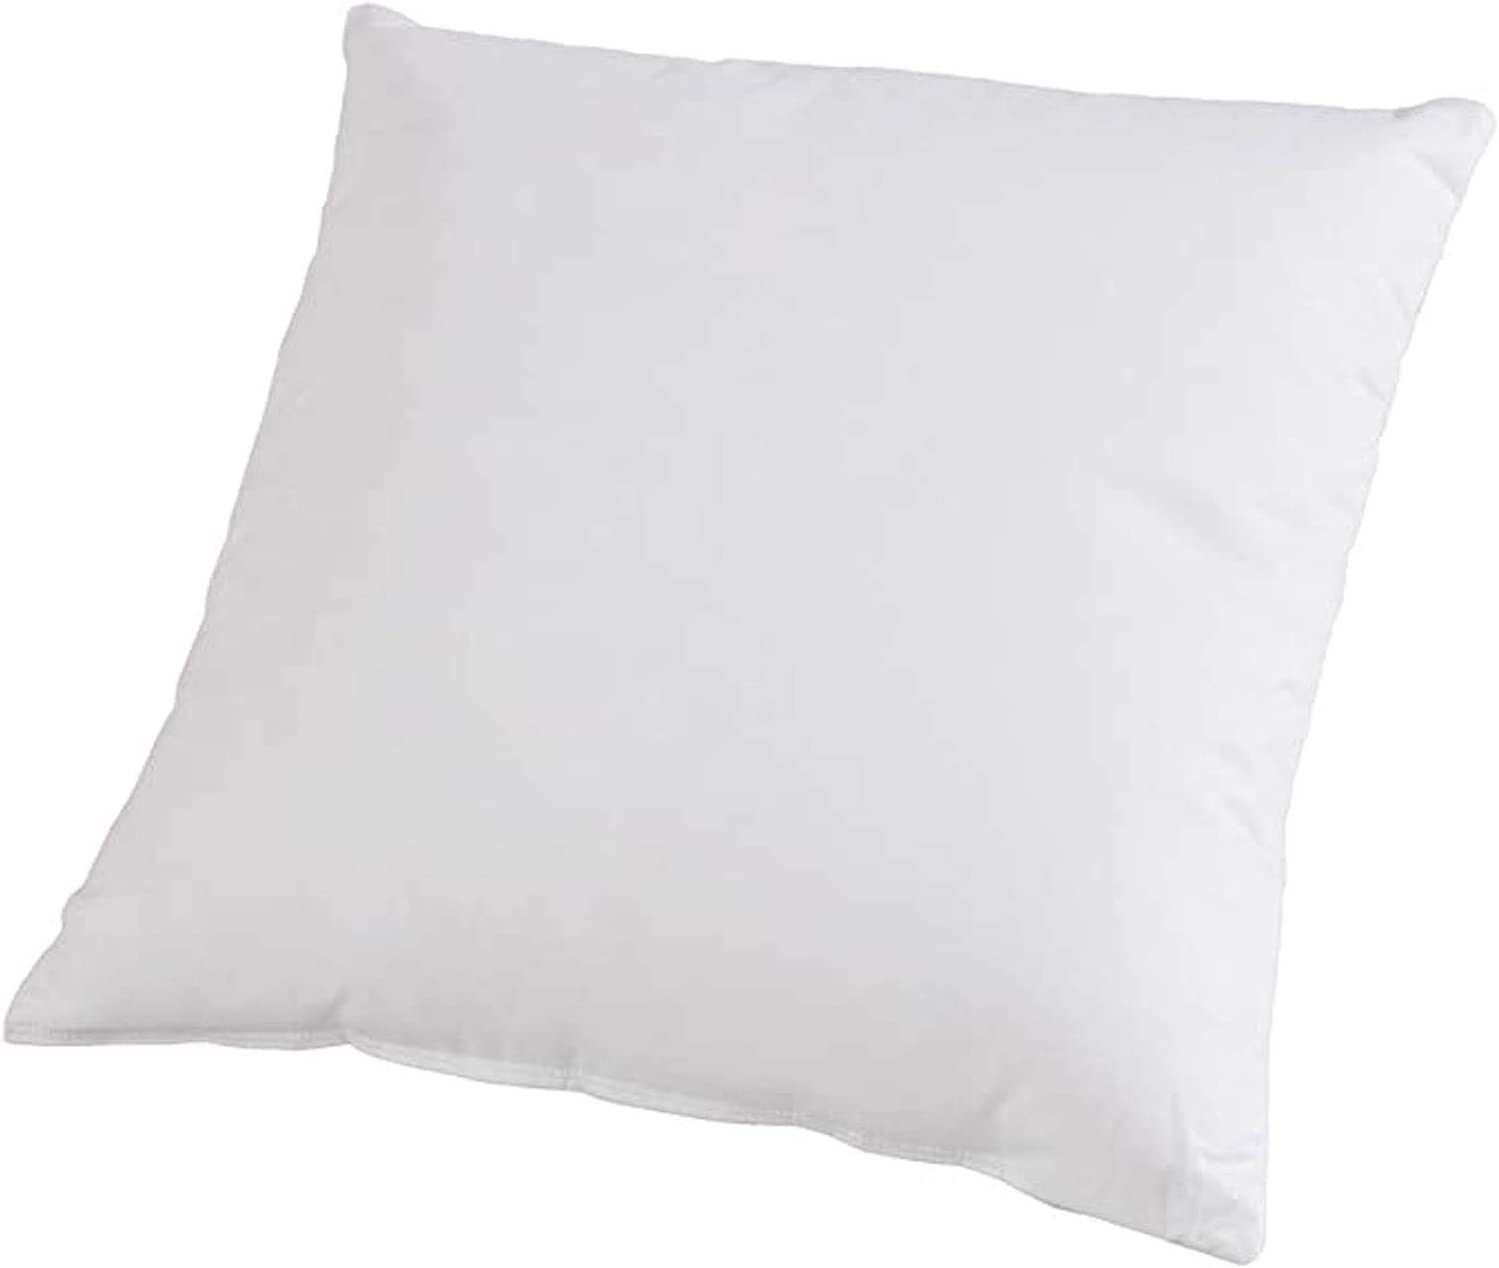 Appoint Home Cushion Inner Filling for Pillow Core Cotton-Padded Houston Mall shopping